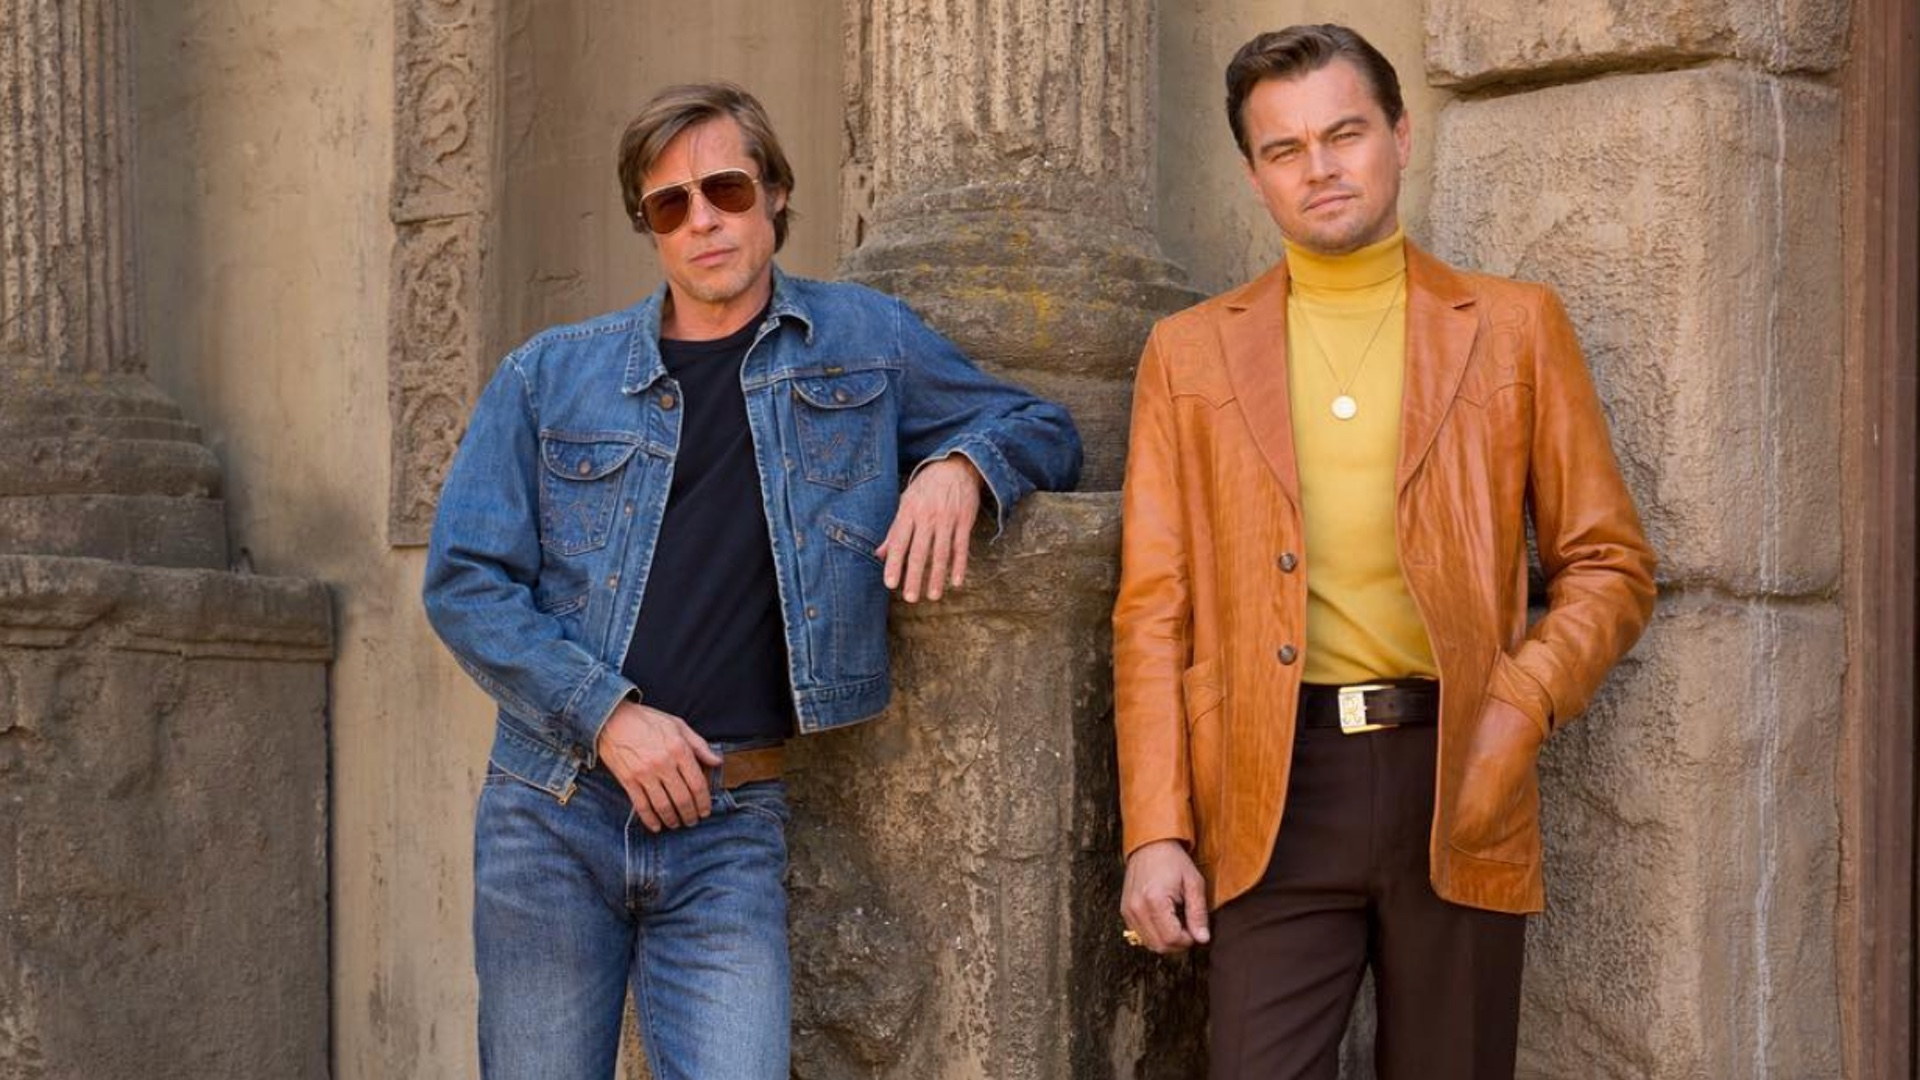 FIRST LOOK AT AARON ECKHART AND RAY LIOTTA IN ONCE UPON A TIME IN HOLLYWOOD